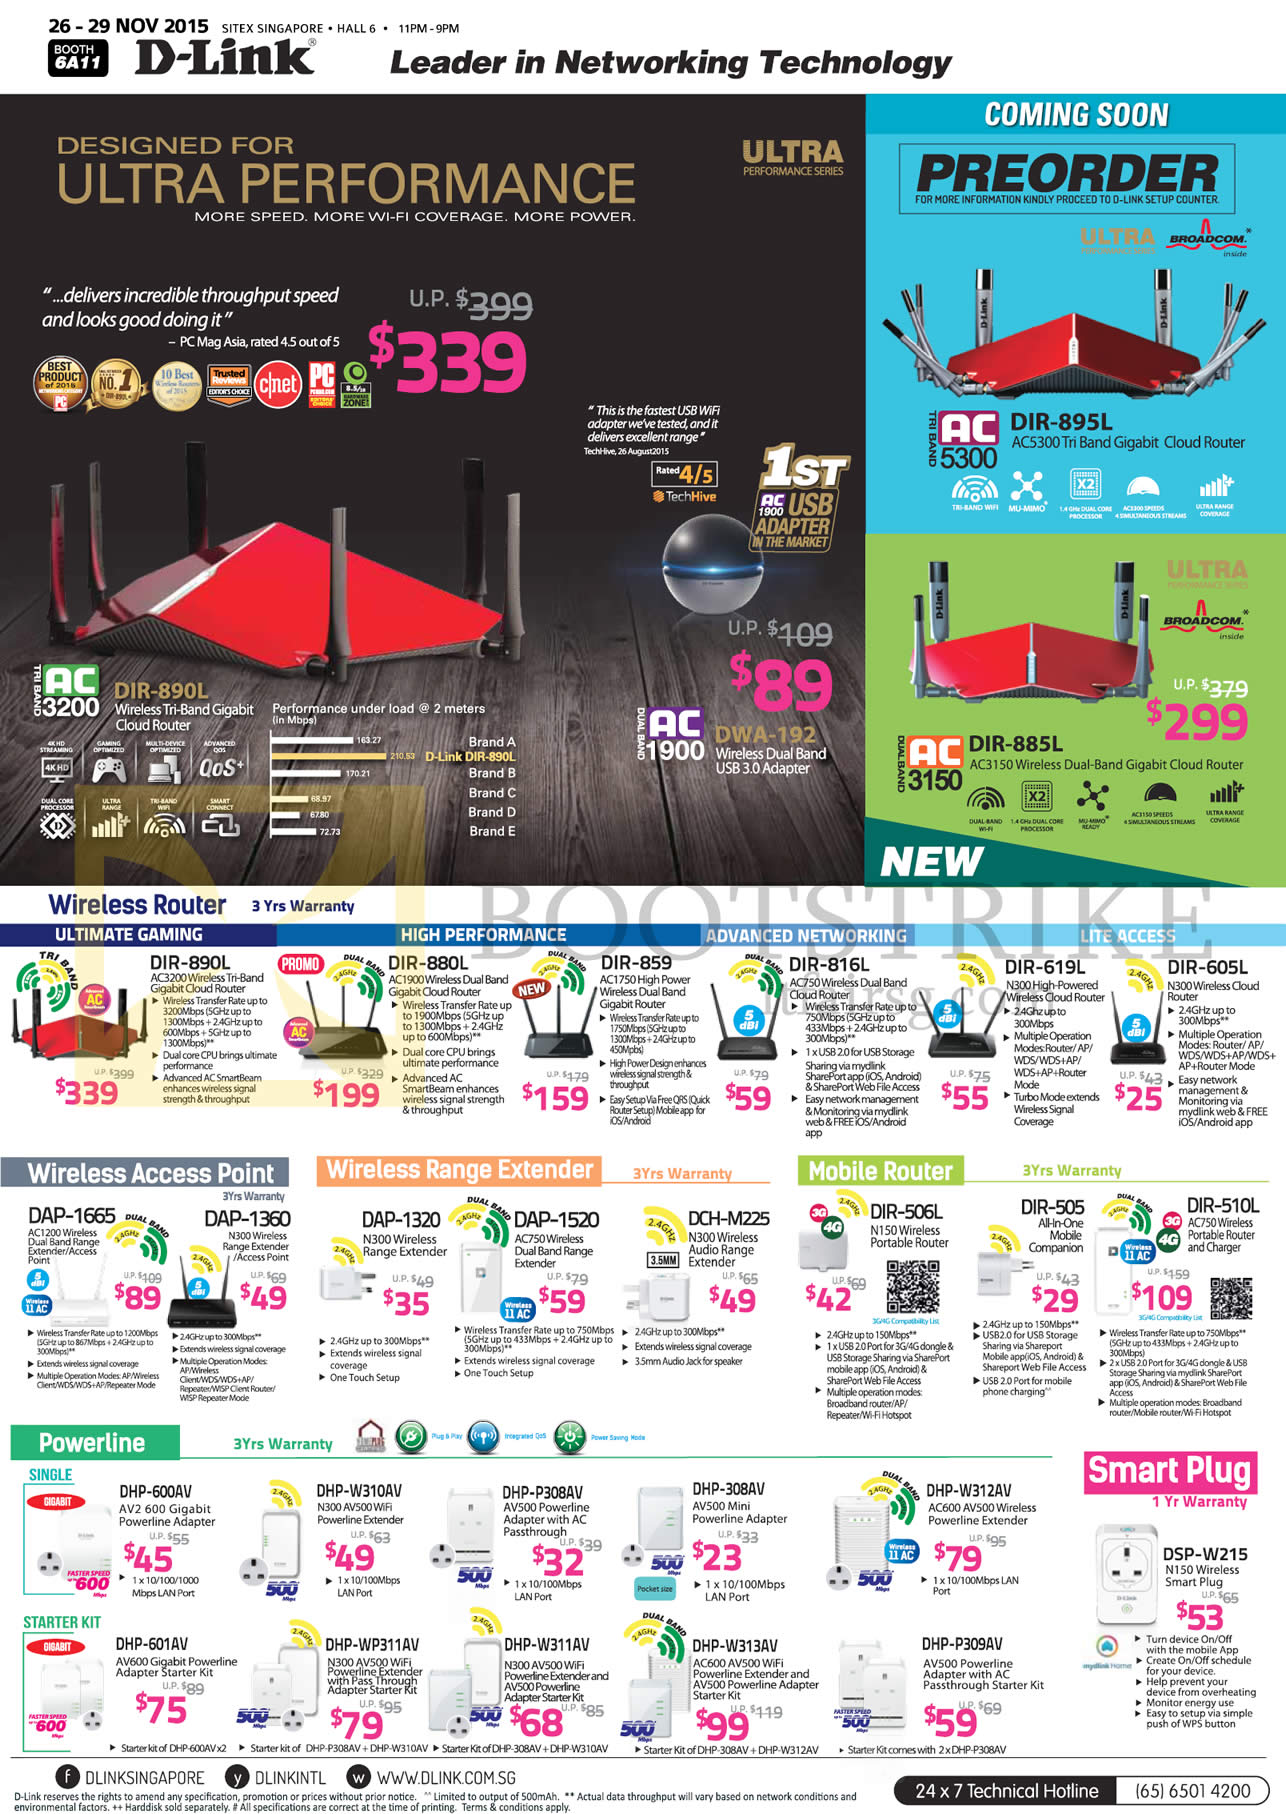 SITEX 2015 price list image brochure of D-Link Networking Wireless Routers, Access Point, Range Extender, Mobile Router, Powerline, Smart Plug, DIR-890L 880L 859 816, 619L DAP-1665 1360 1320 1520, DIR-506L 505 510L